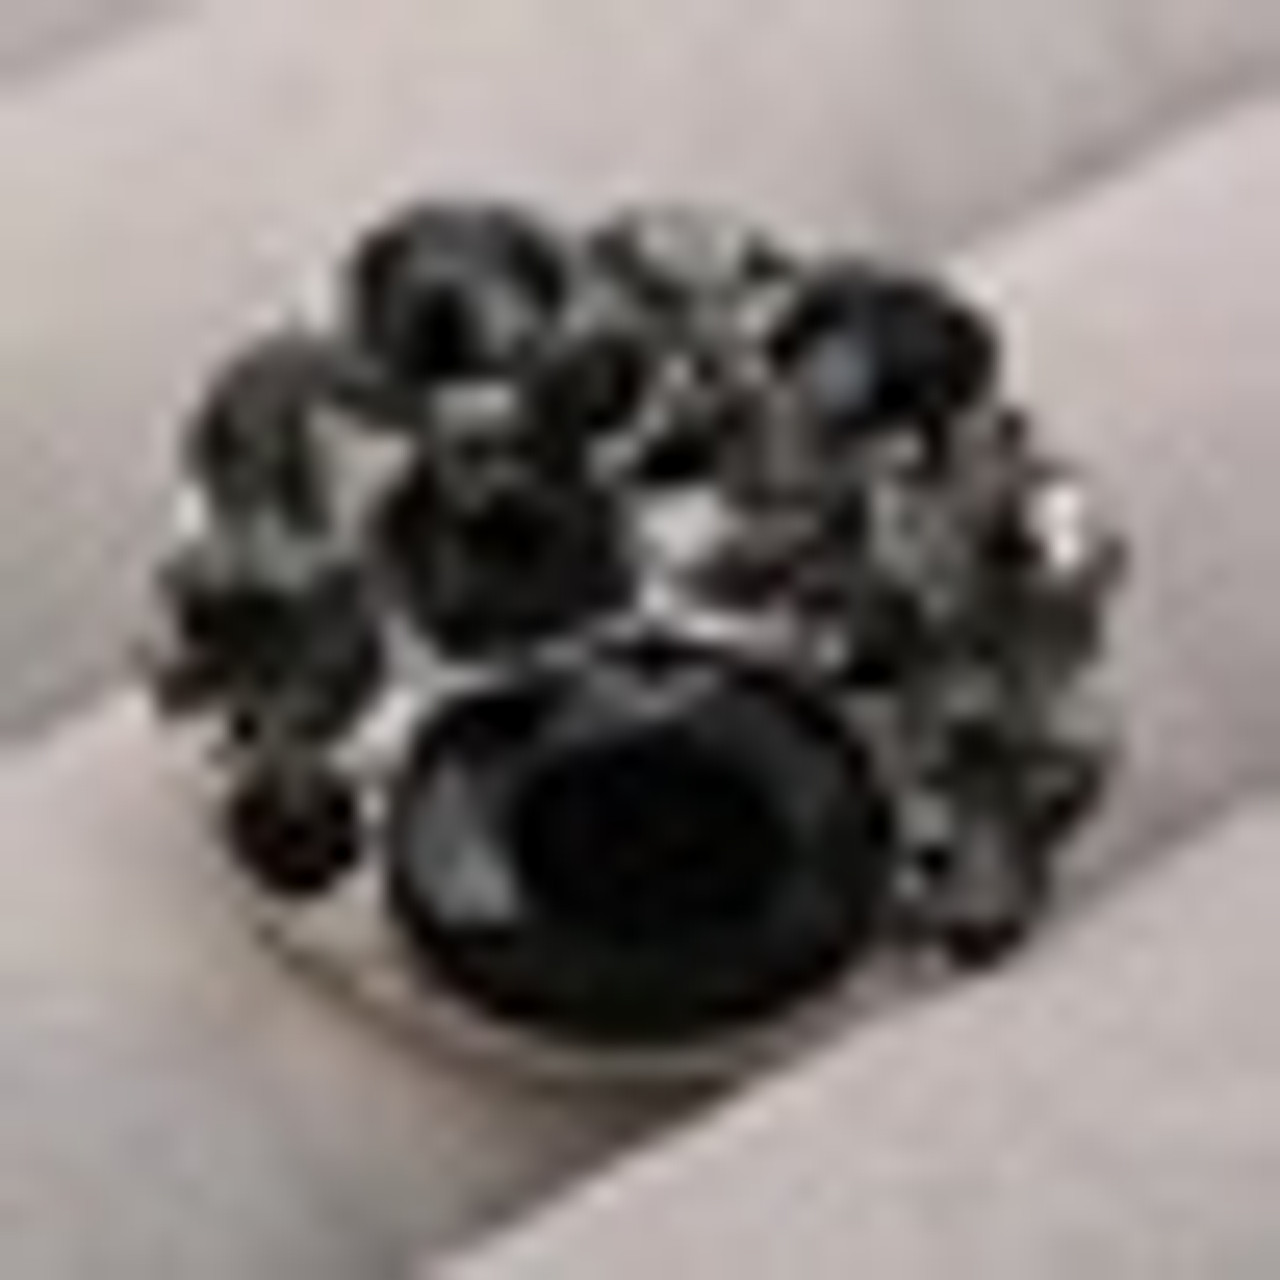 1 Black/Gray Rhinestone Snap Button Embellishment